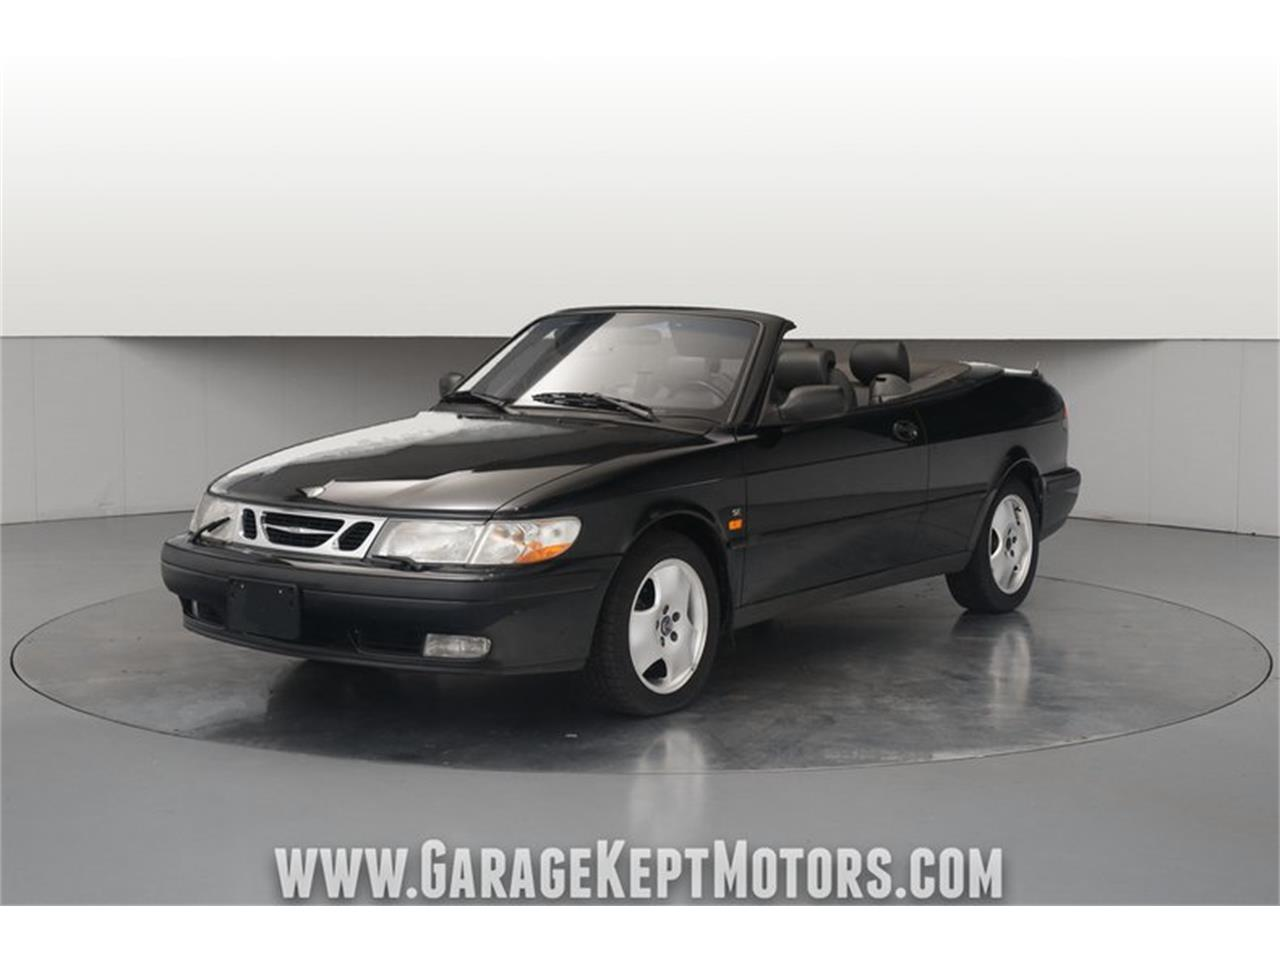 1999 Saab 9-3 for sale in Grand Rapids, MI – photo 15